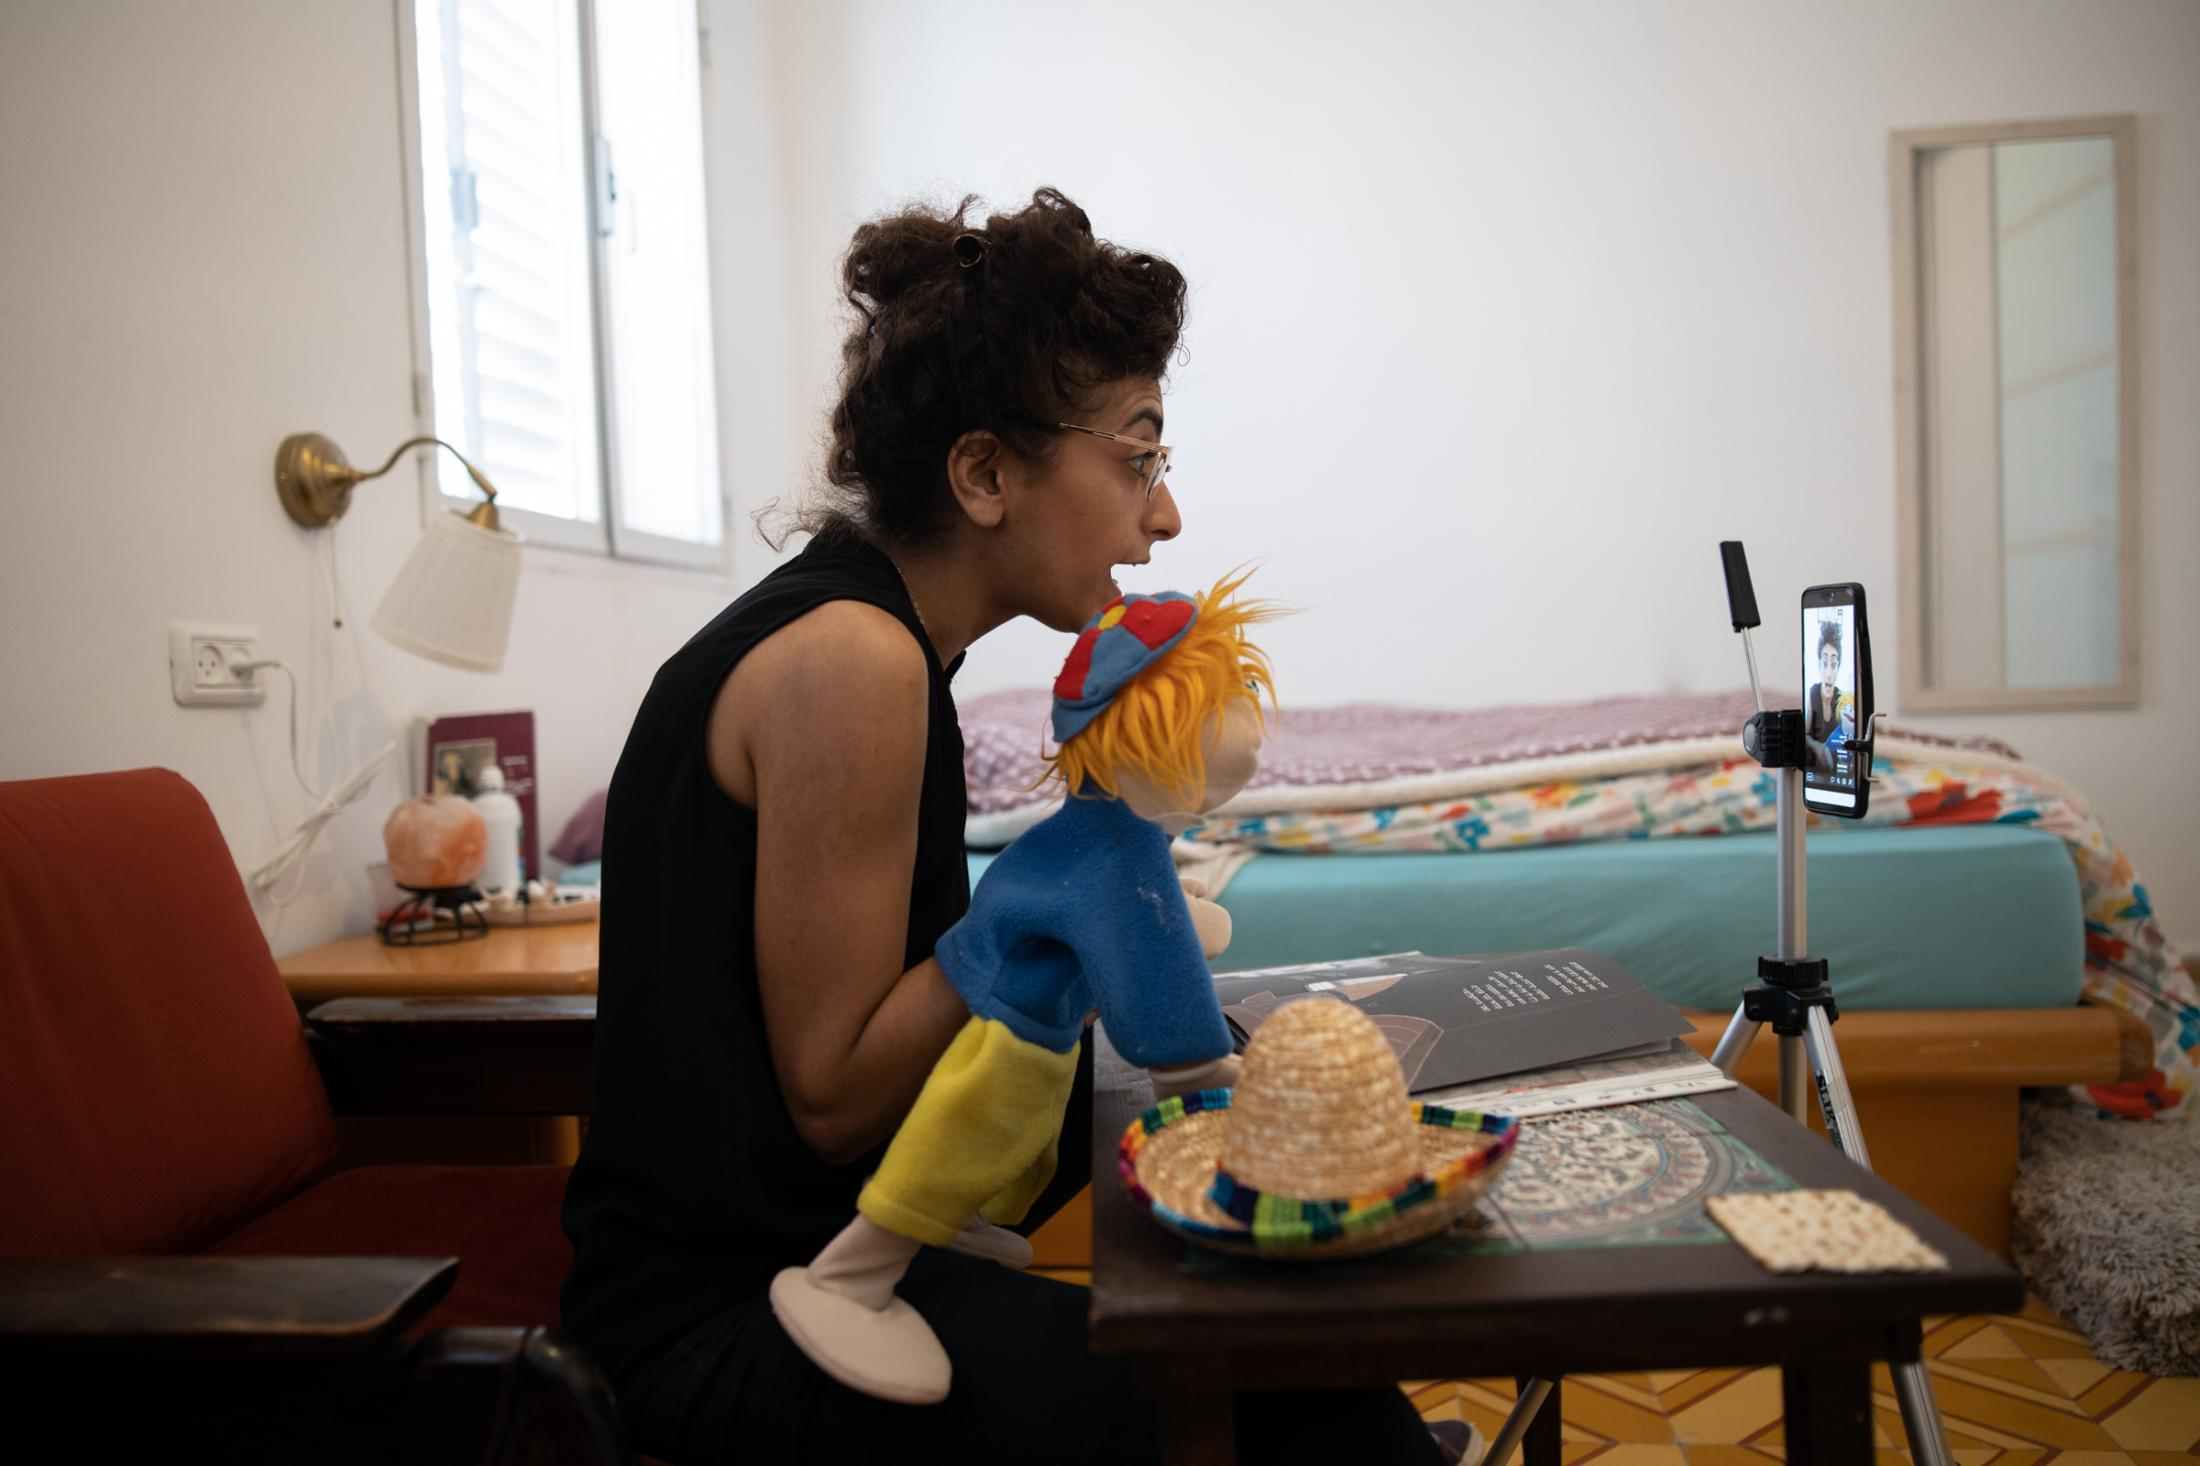 """Actress Ruth Tubi, 35, performs with a doll while doing storytelling for children on Zoom in her home in Tel Aviv, Israel, April 30, 2020. """"Usually I feel the energy of the audience, so it's very different now. This is why online I included the puppet, which makes me feel like somebody else is with me. In storytelling for children, you usually stop in between to ask them how they feel. Now the puppet gives me the answer instead of the children."""""""